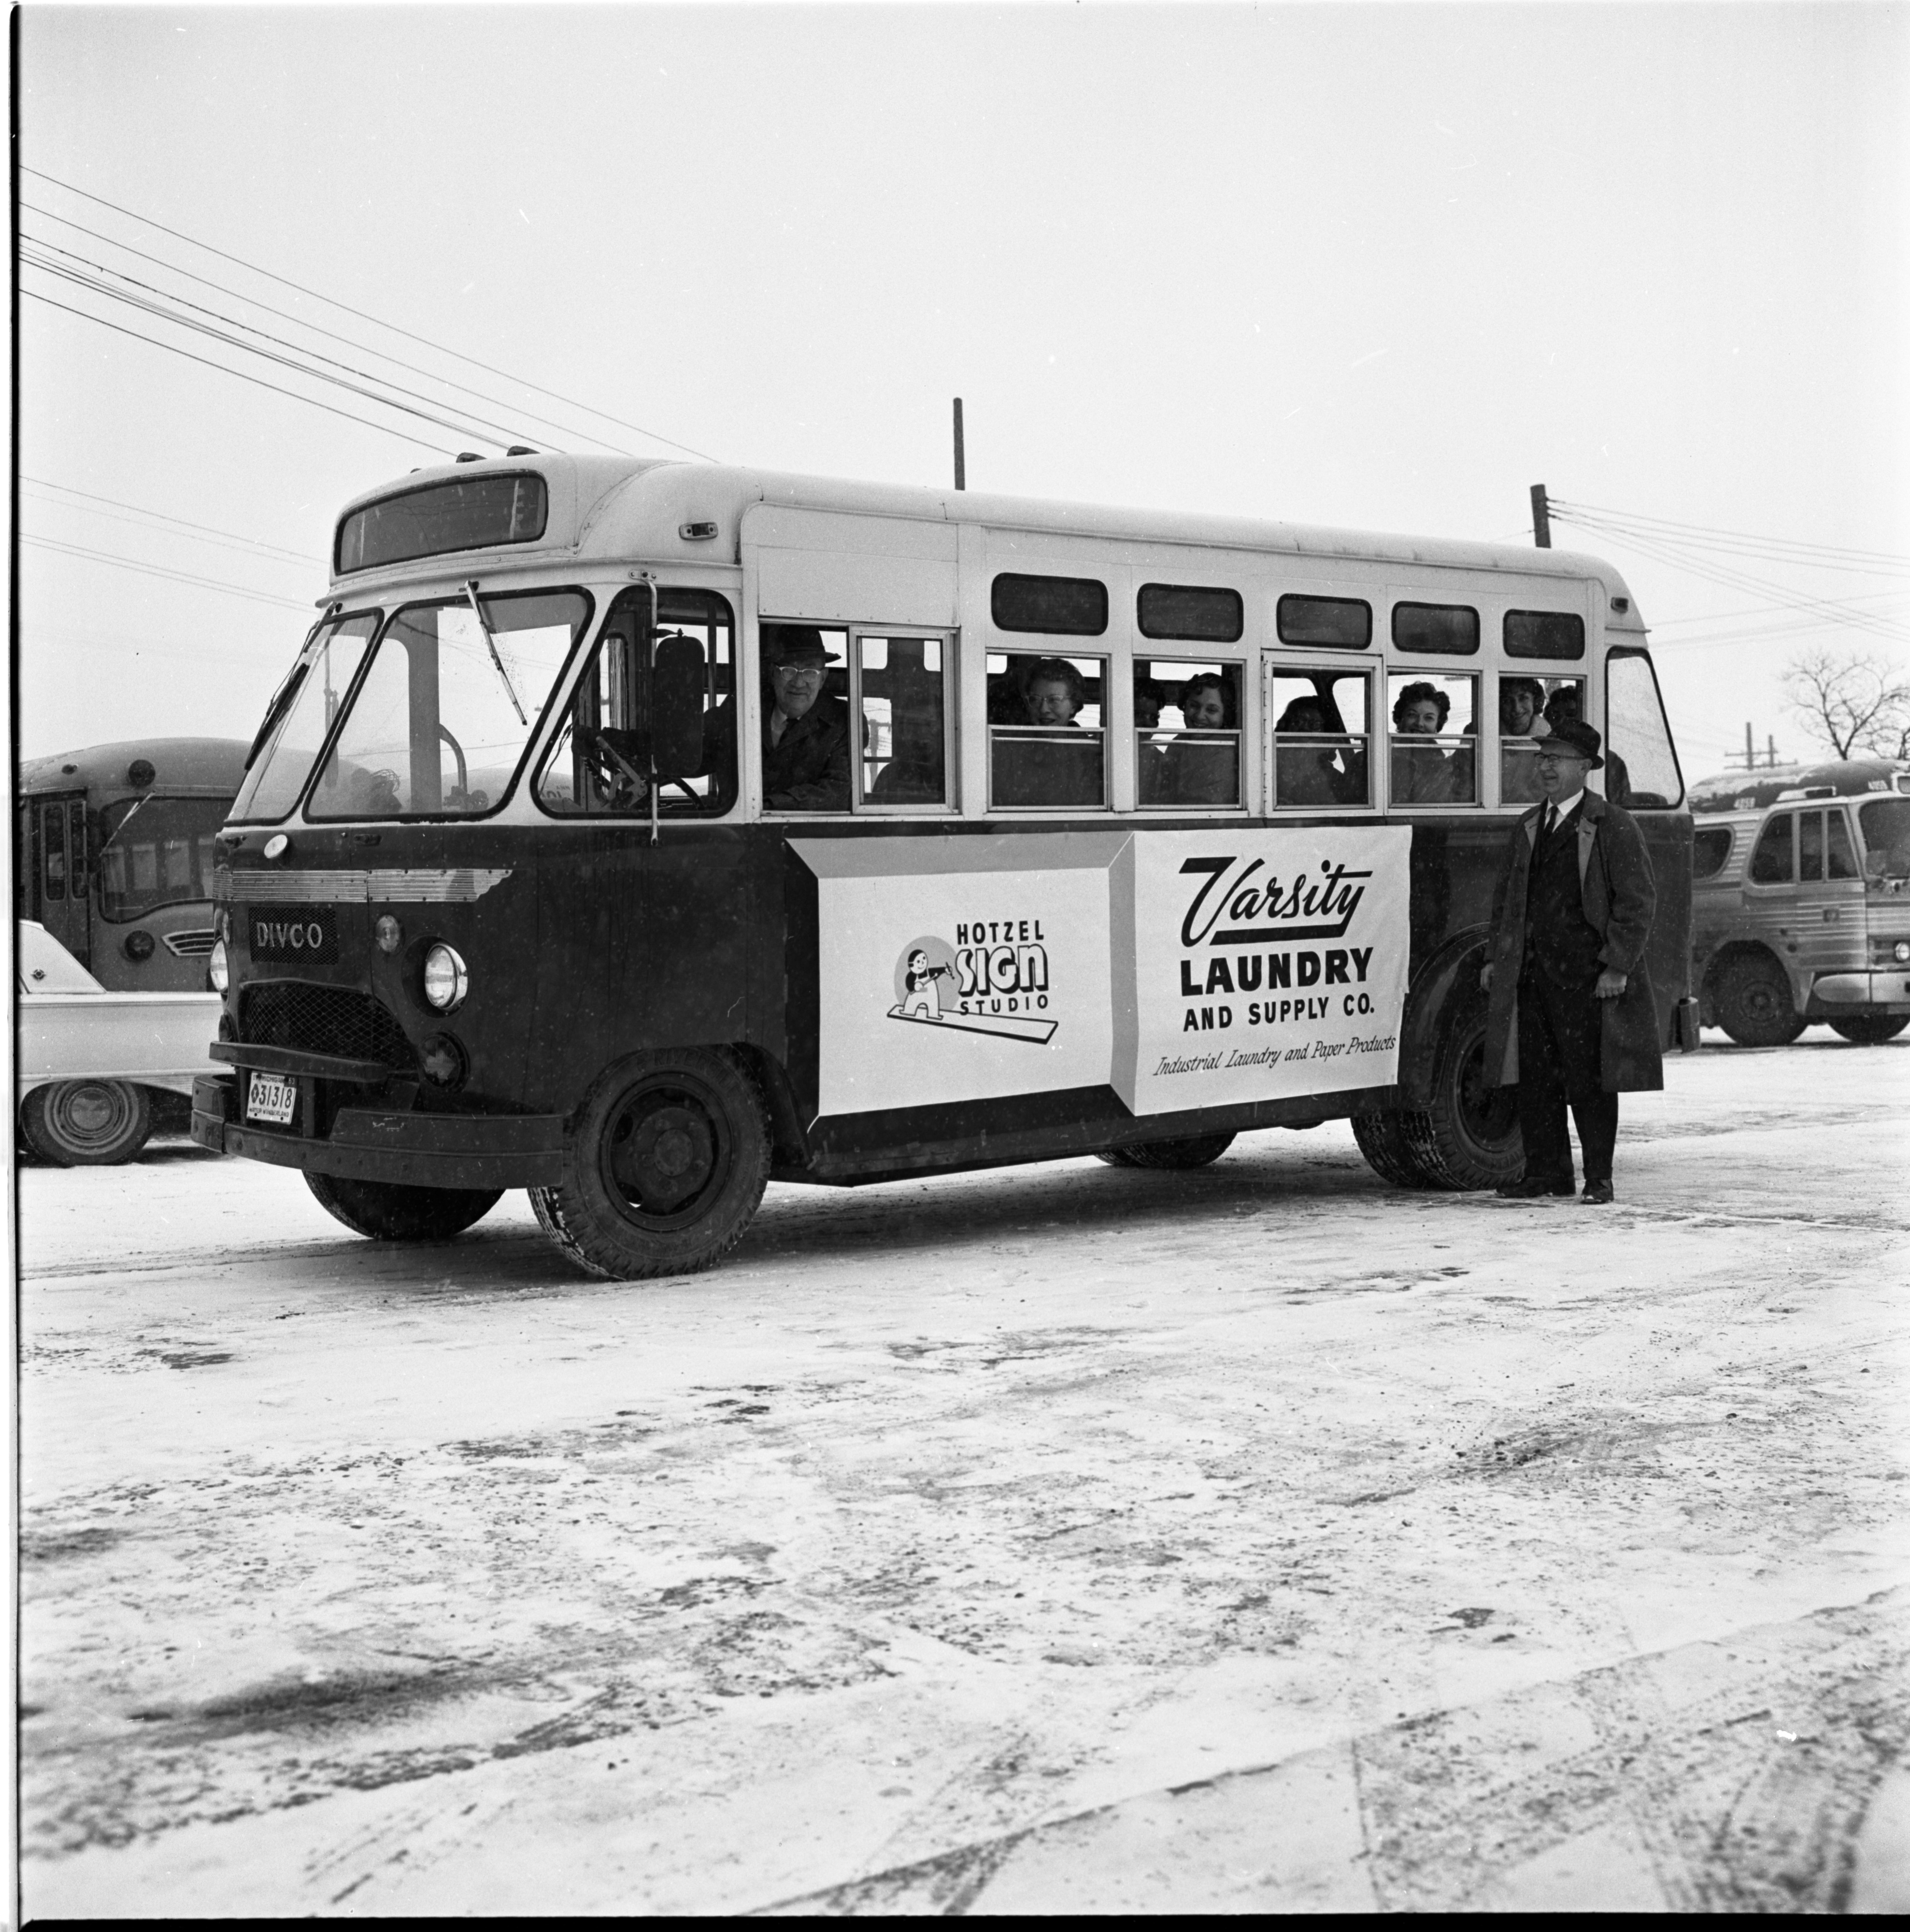 Bus-Side Advertising Helps Pay For Public Transportation, January 1964 image